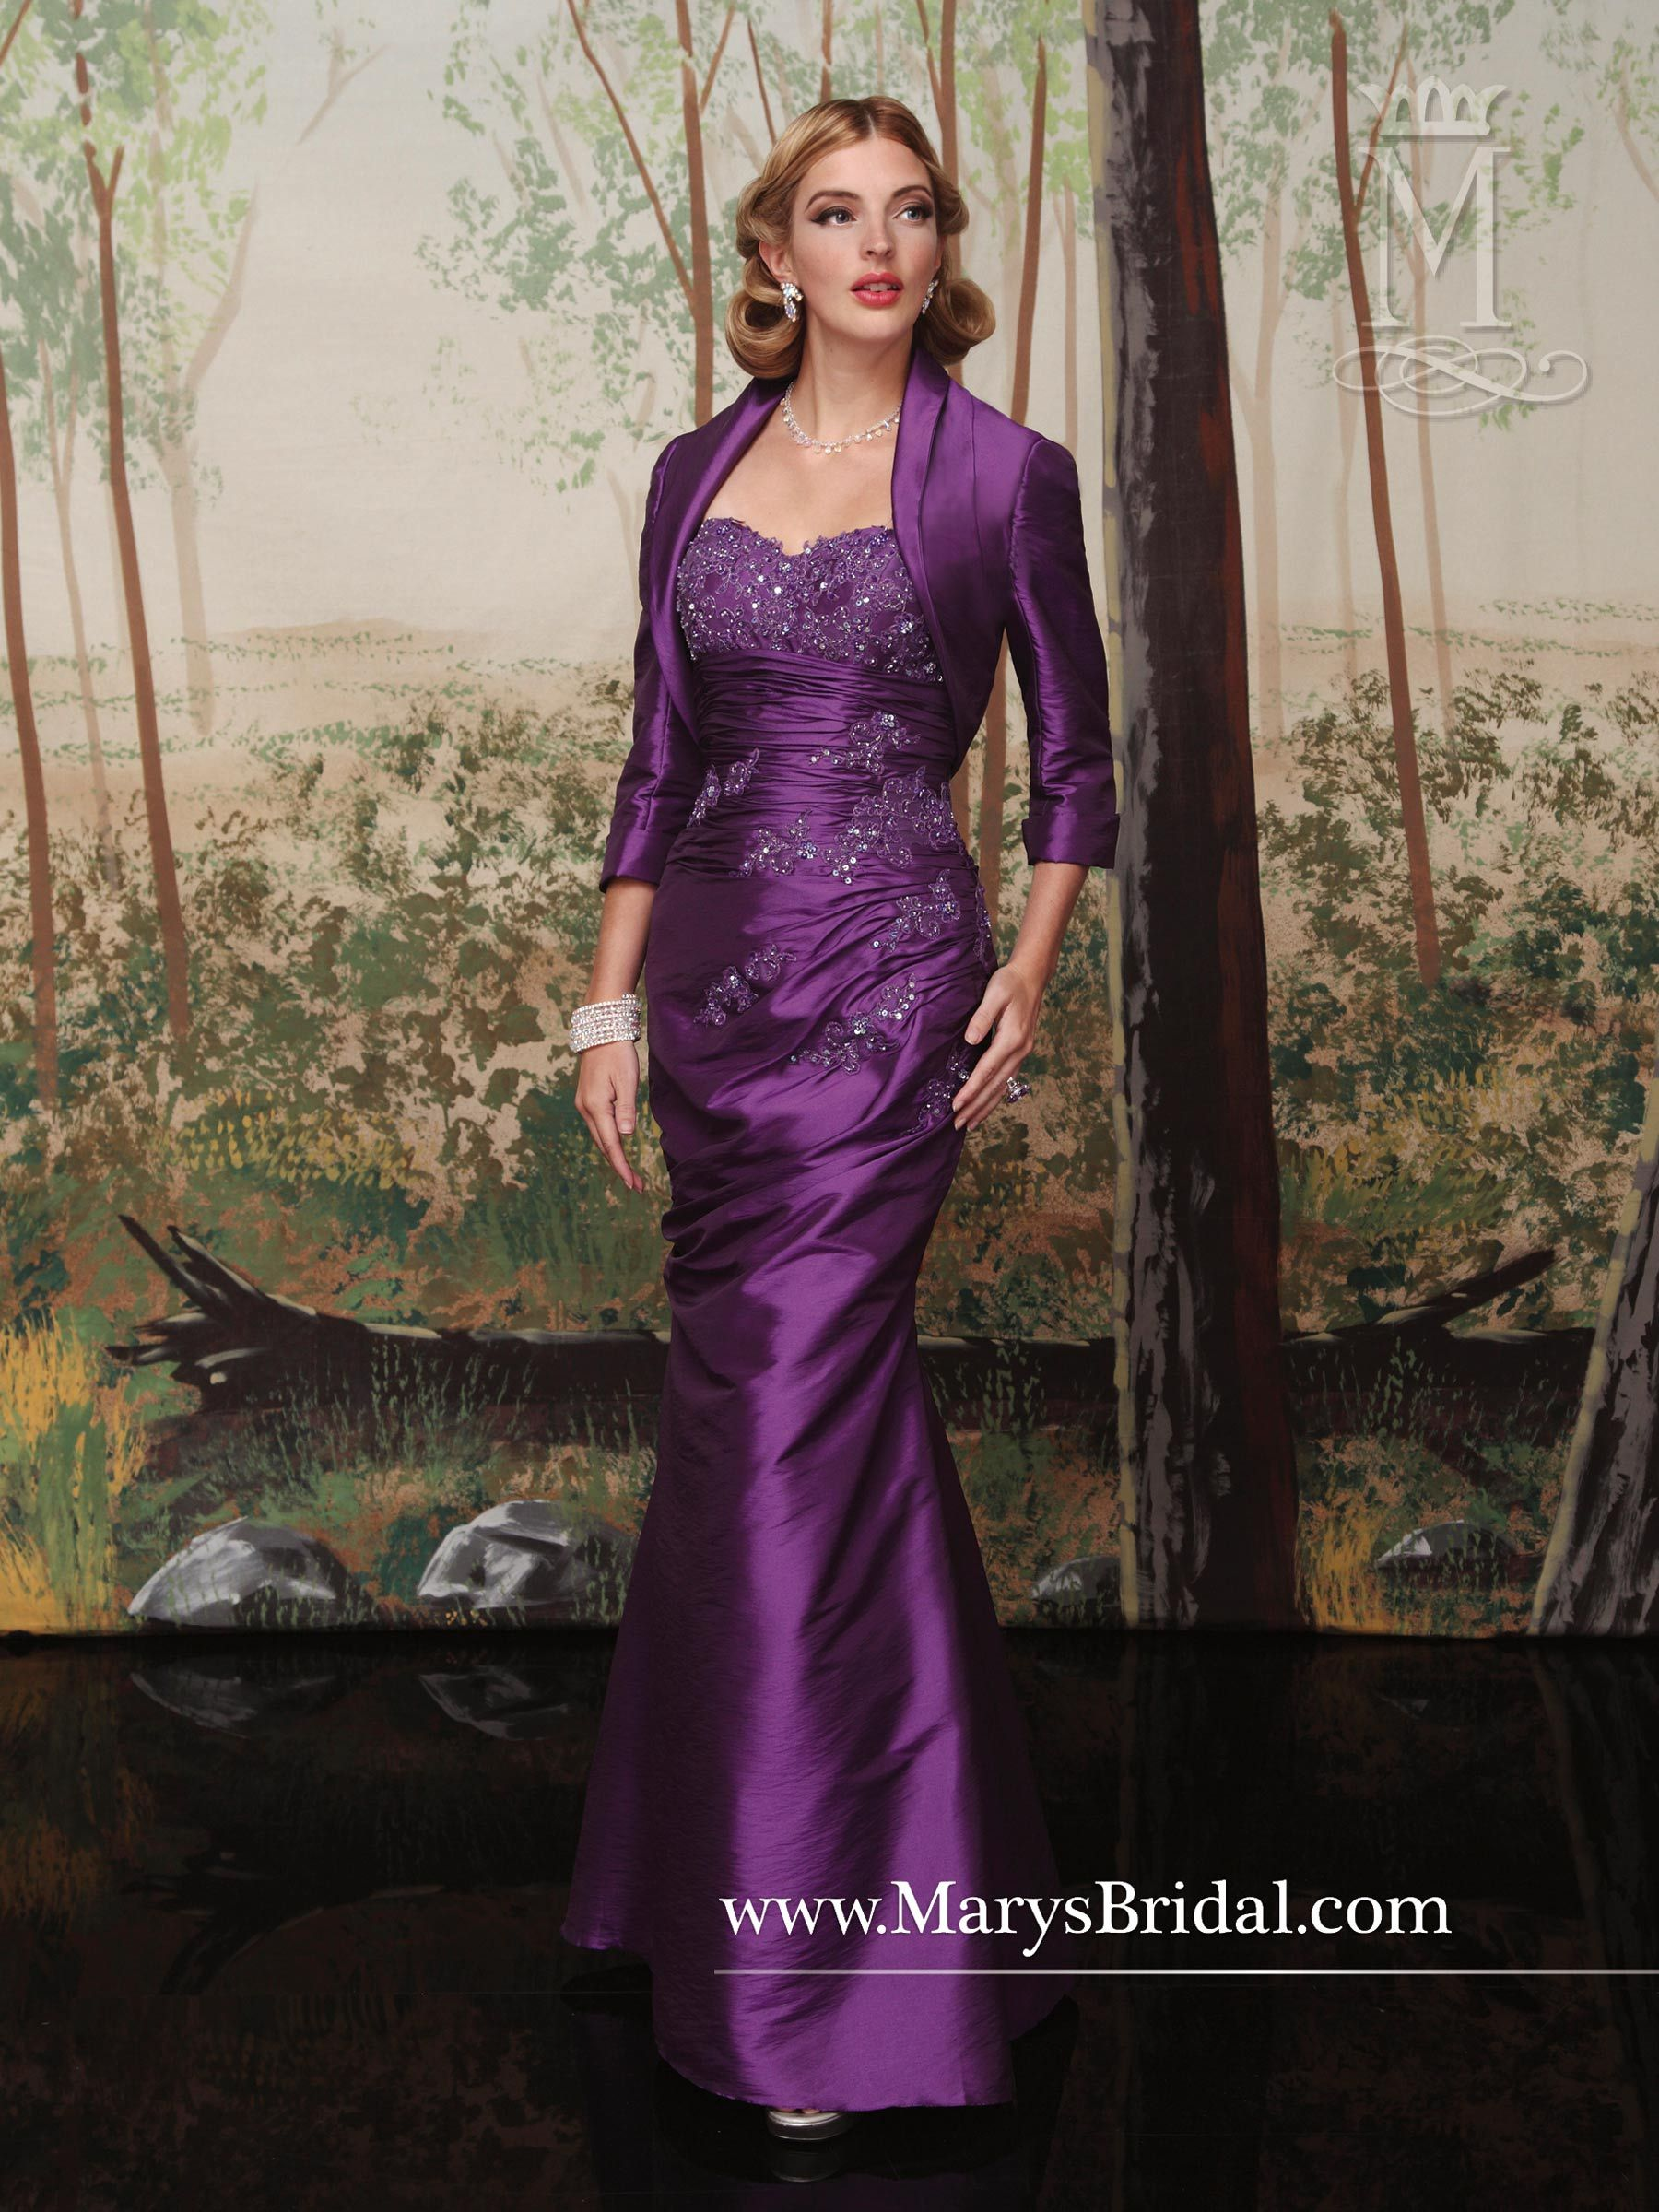 Dresses for 50th wedding anniversary party  Bordering between classic and contemporary the Marys M Mother